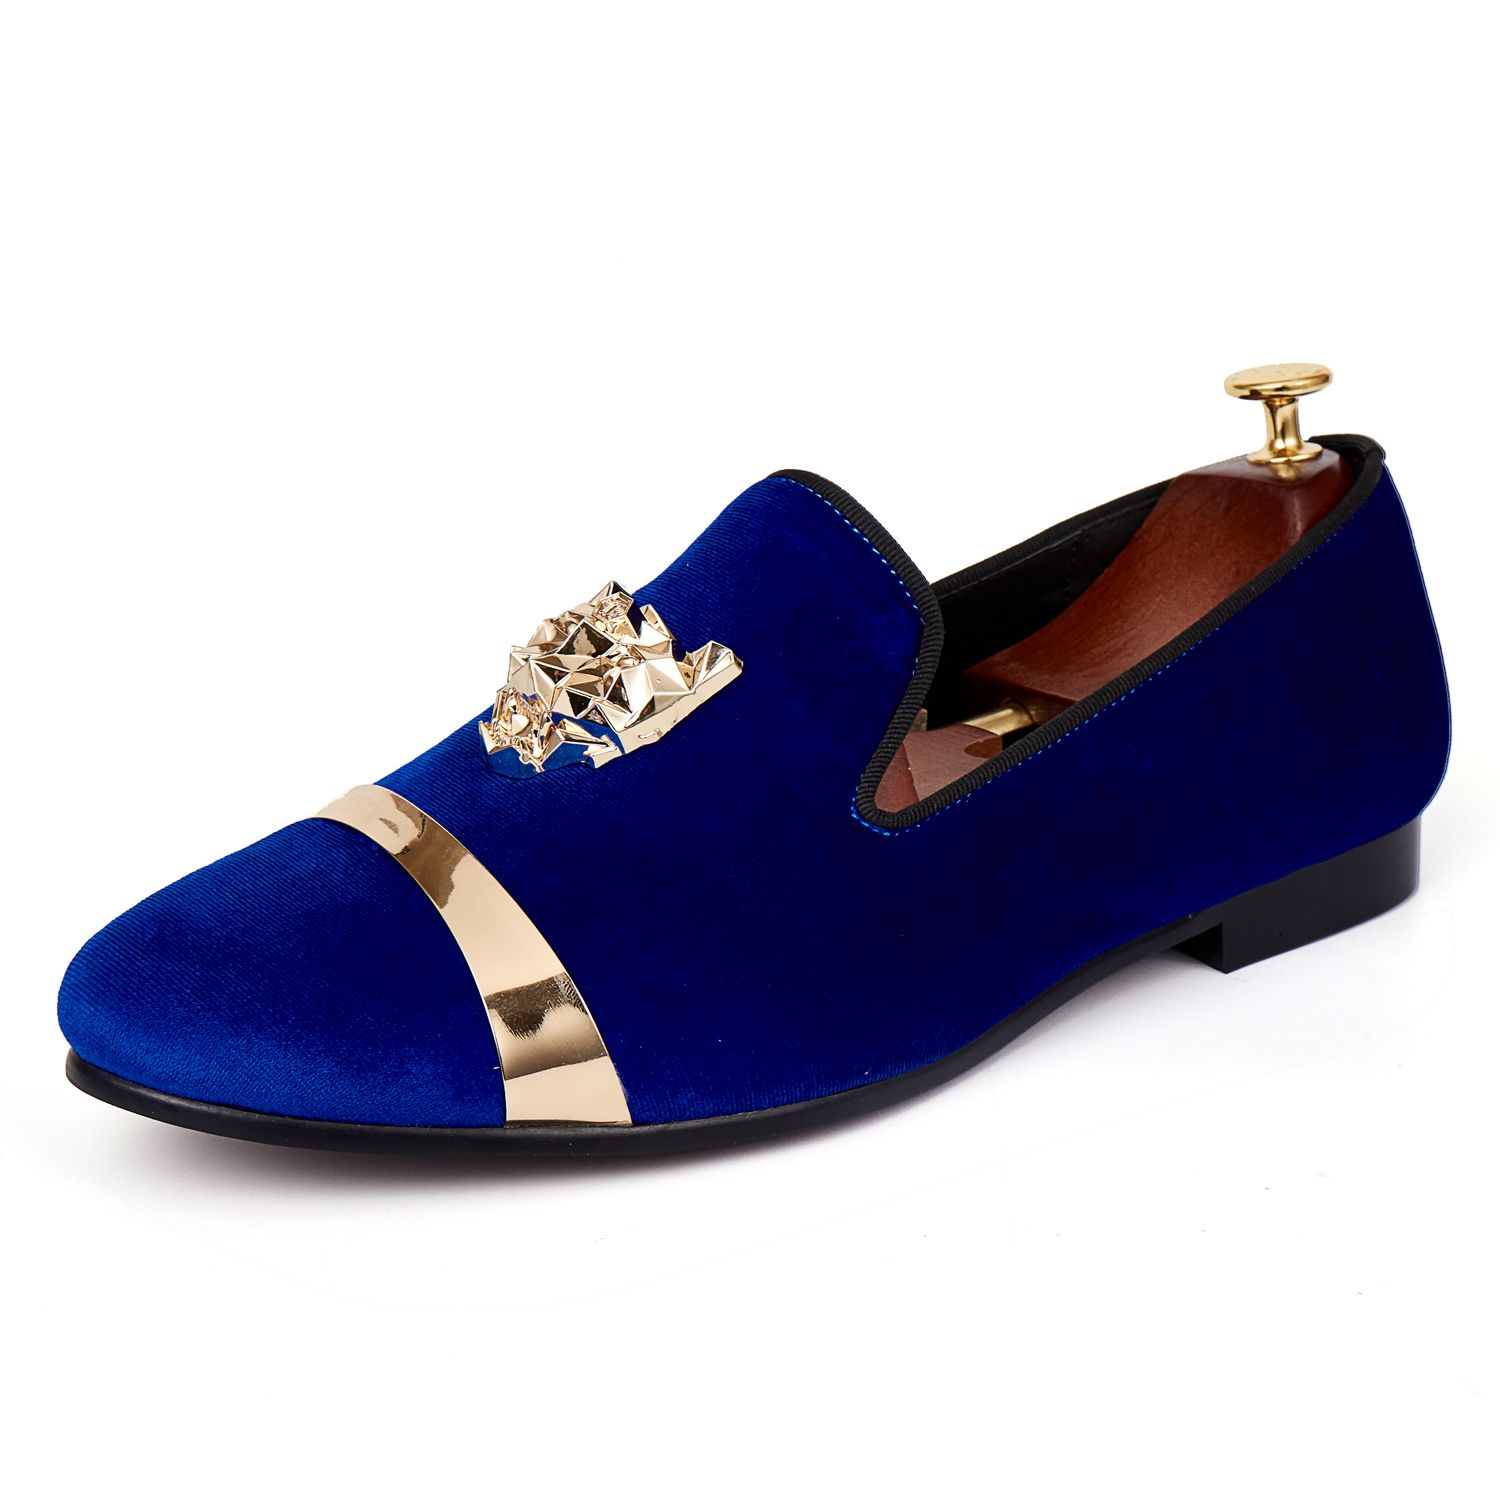 Harpelunde Men Flats New Arrival Dress Shoes Blue Velvet Loafers With Animal Buckle Size 7-14